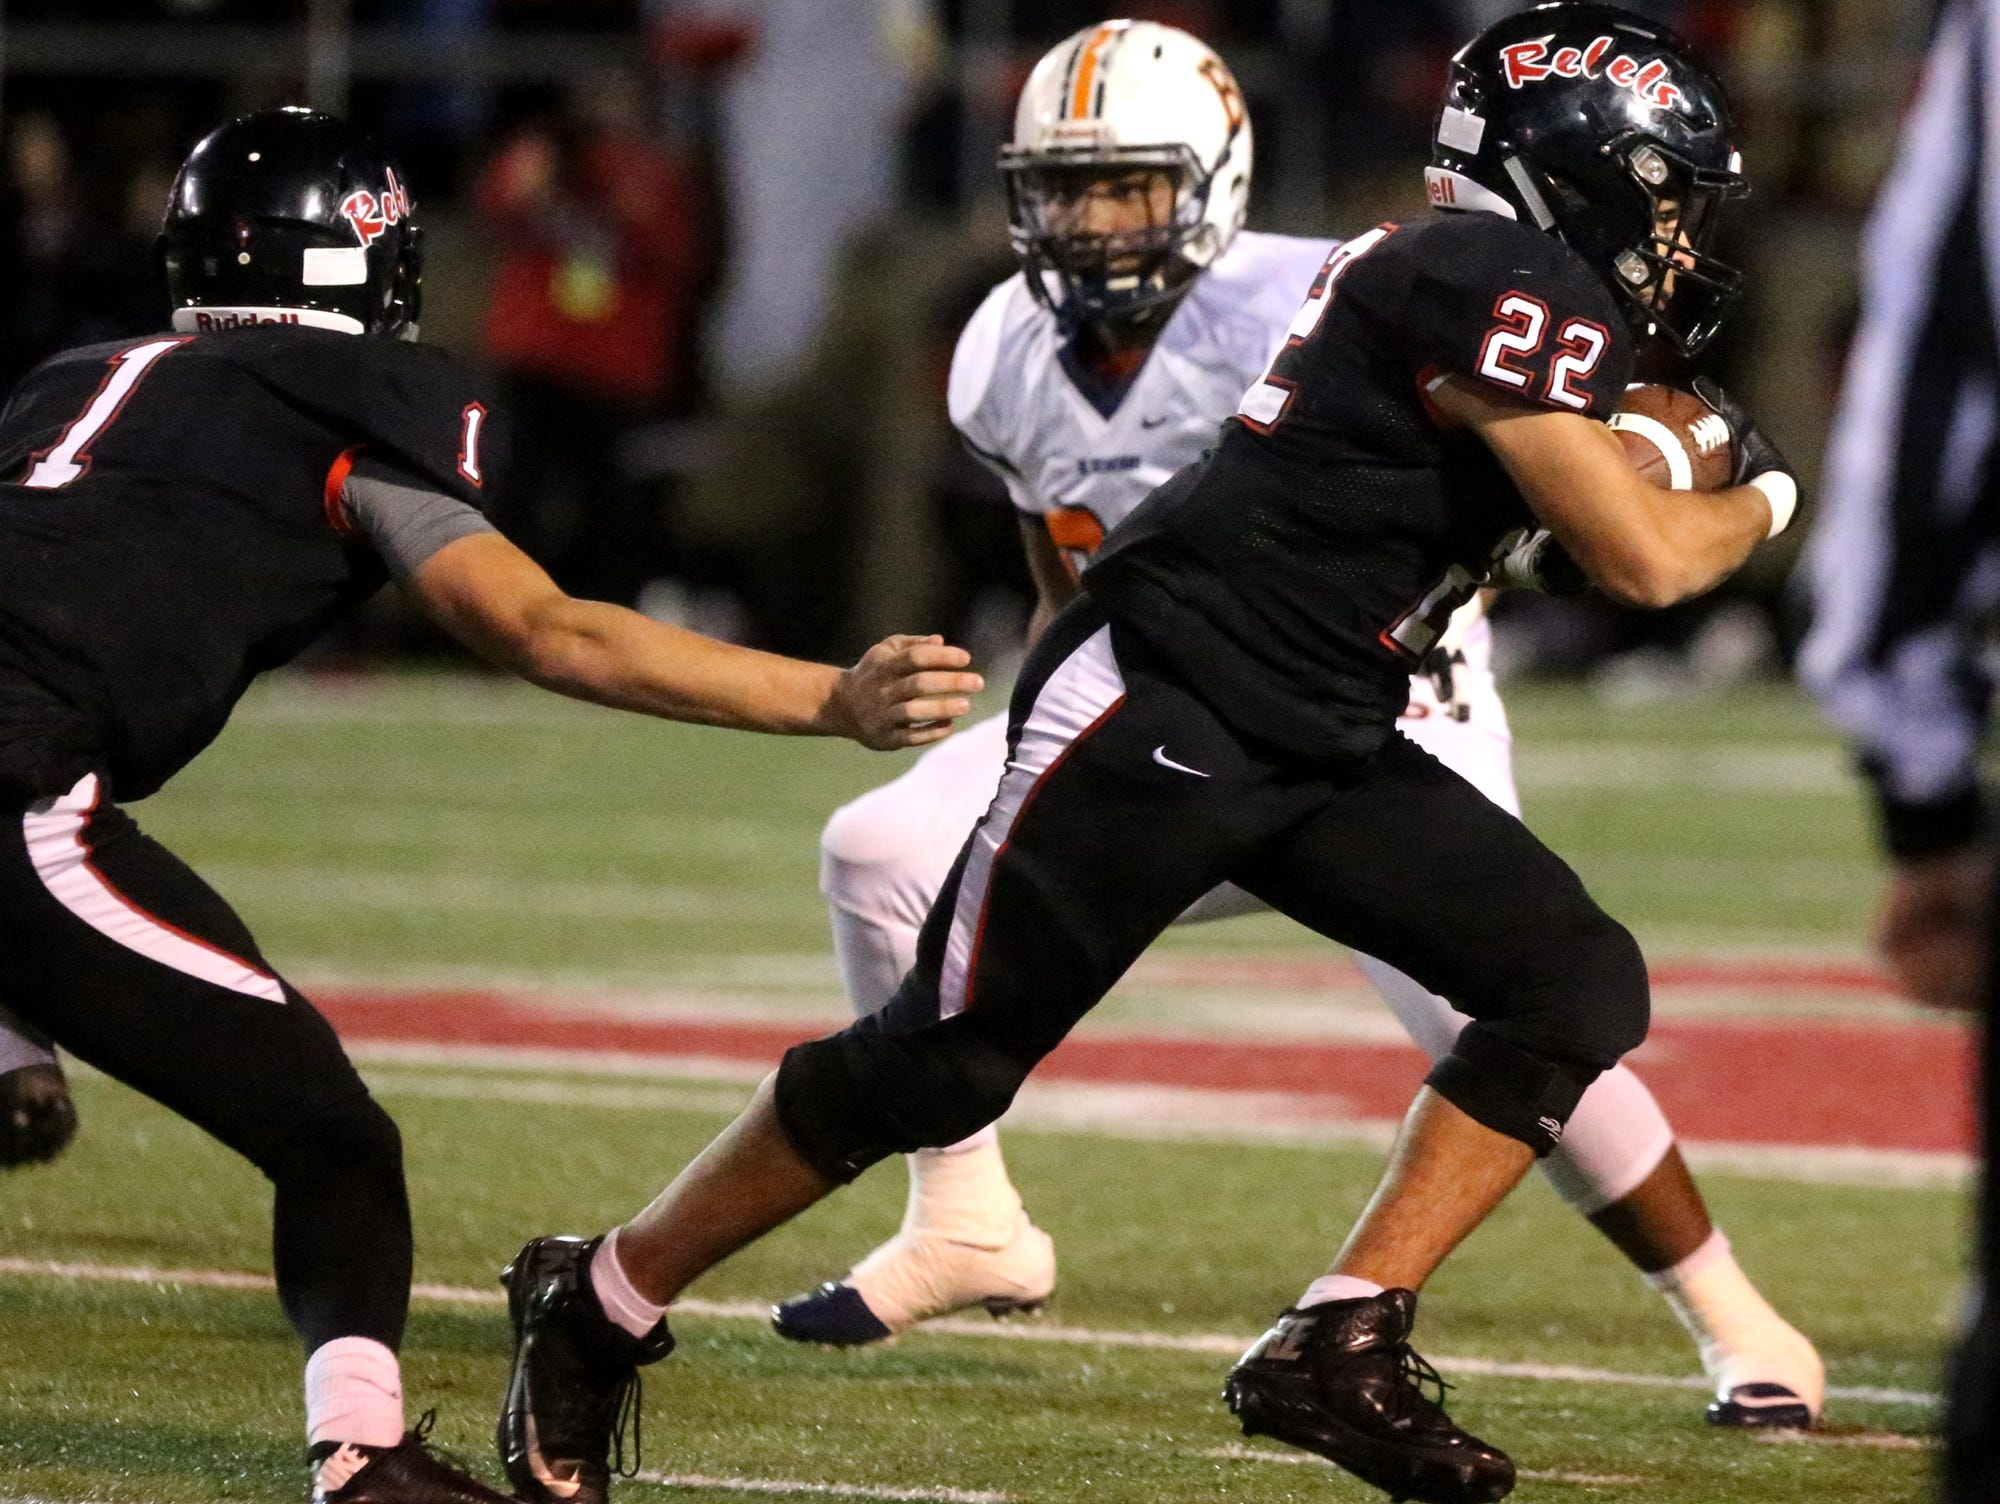 Maryville's Jordan Ervin (22) runs the ball after Maryville's quarterback Dylan Hopkins hands the ball off to Ervin during the quarterfinal game against Blackman, at Maryville, on Friday, Nov. 20, 2015.